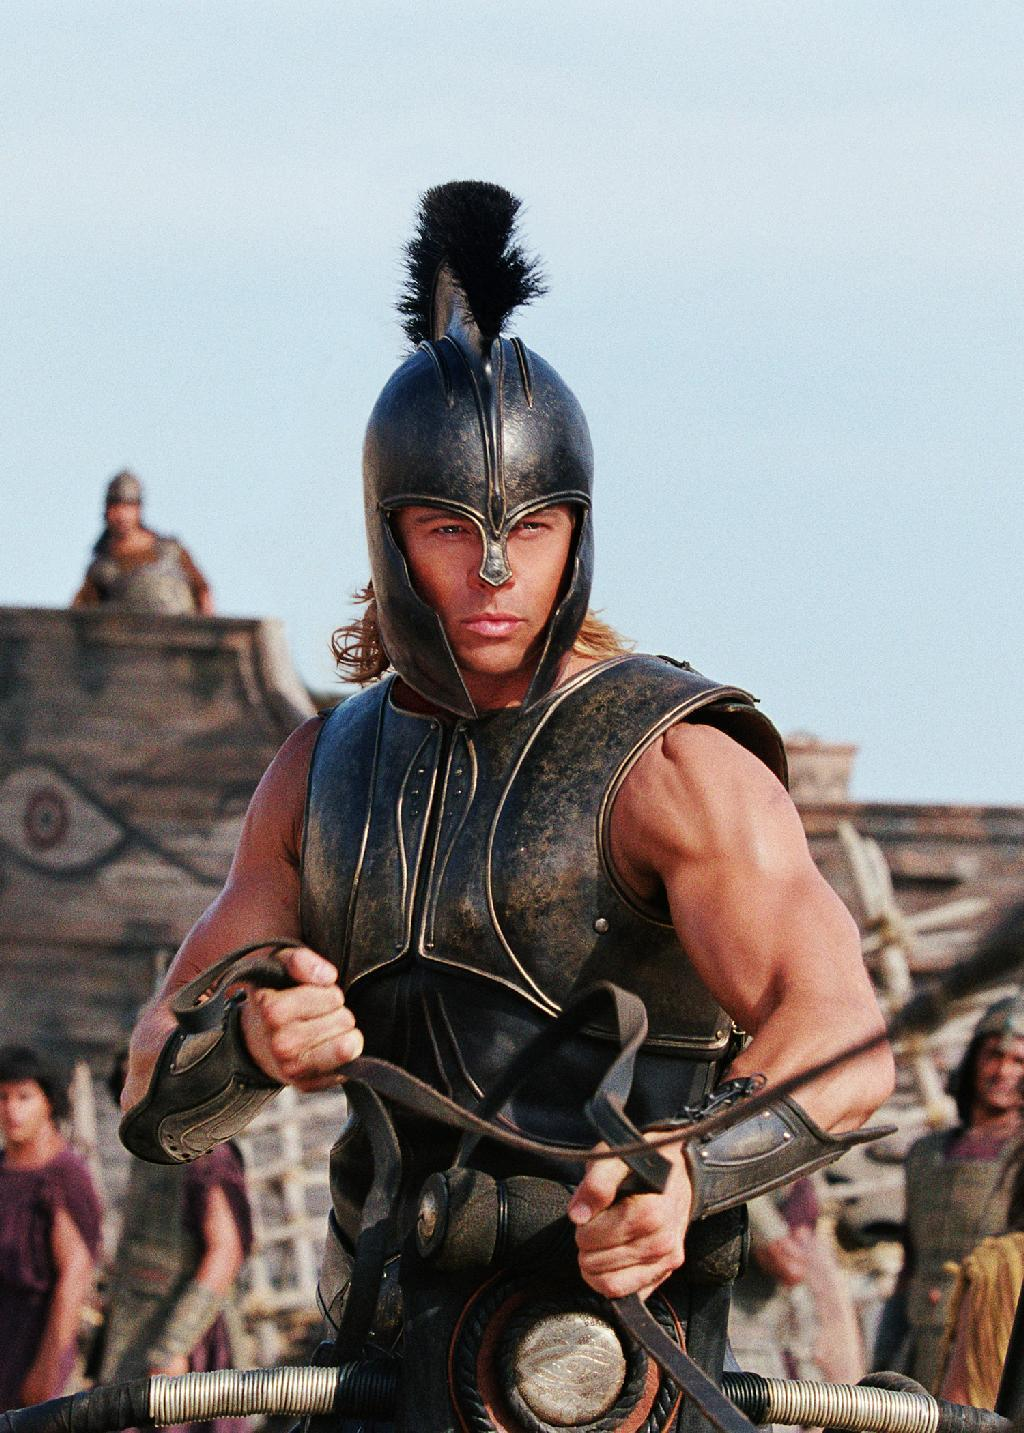 Does Troy have an accurate portrayal of Achilles in the Iliad?